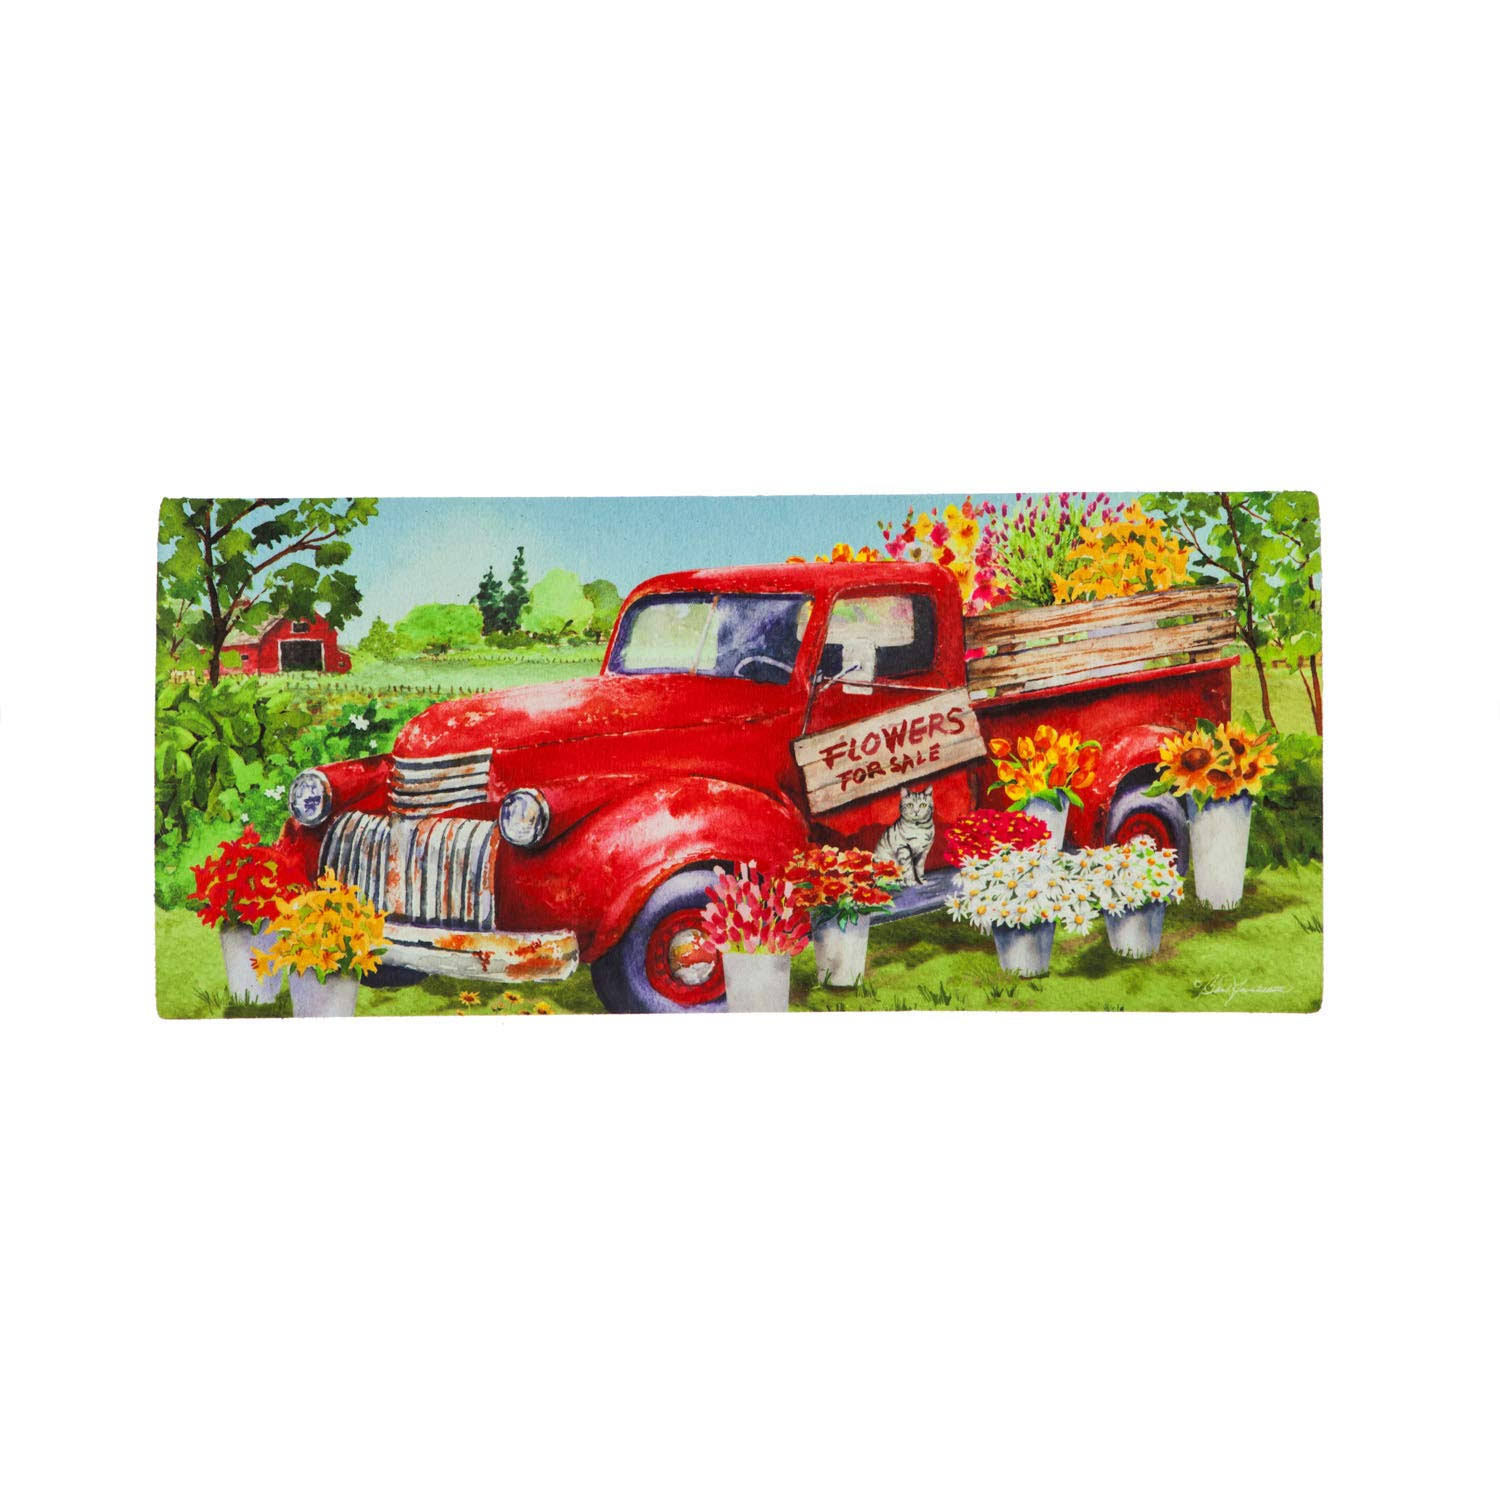 Evergreen Flag Red Flower Truck Sassafras Switch Mat - 22 x 1 x 10 Inches